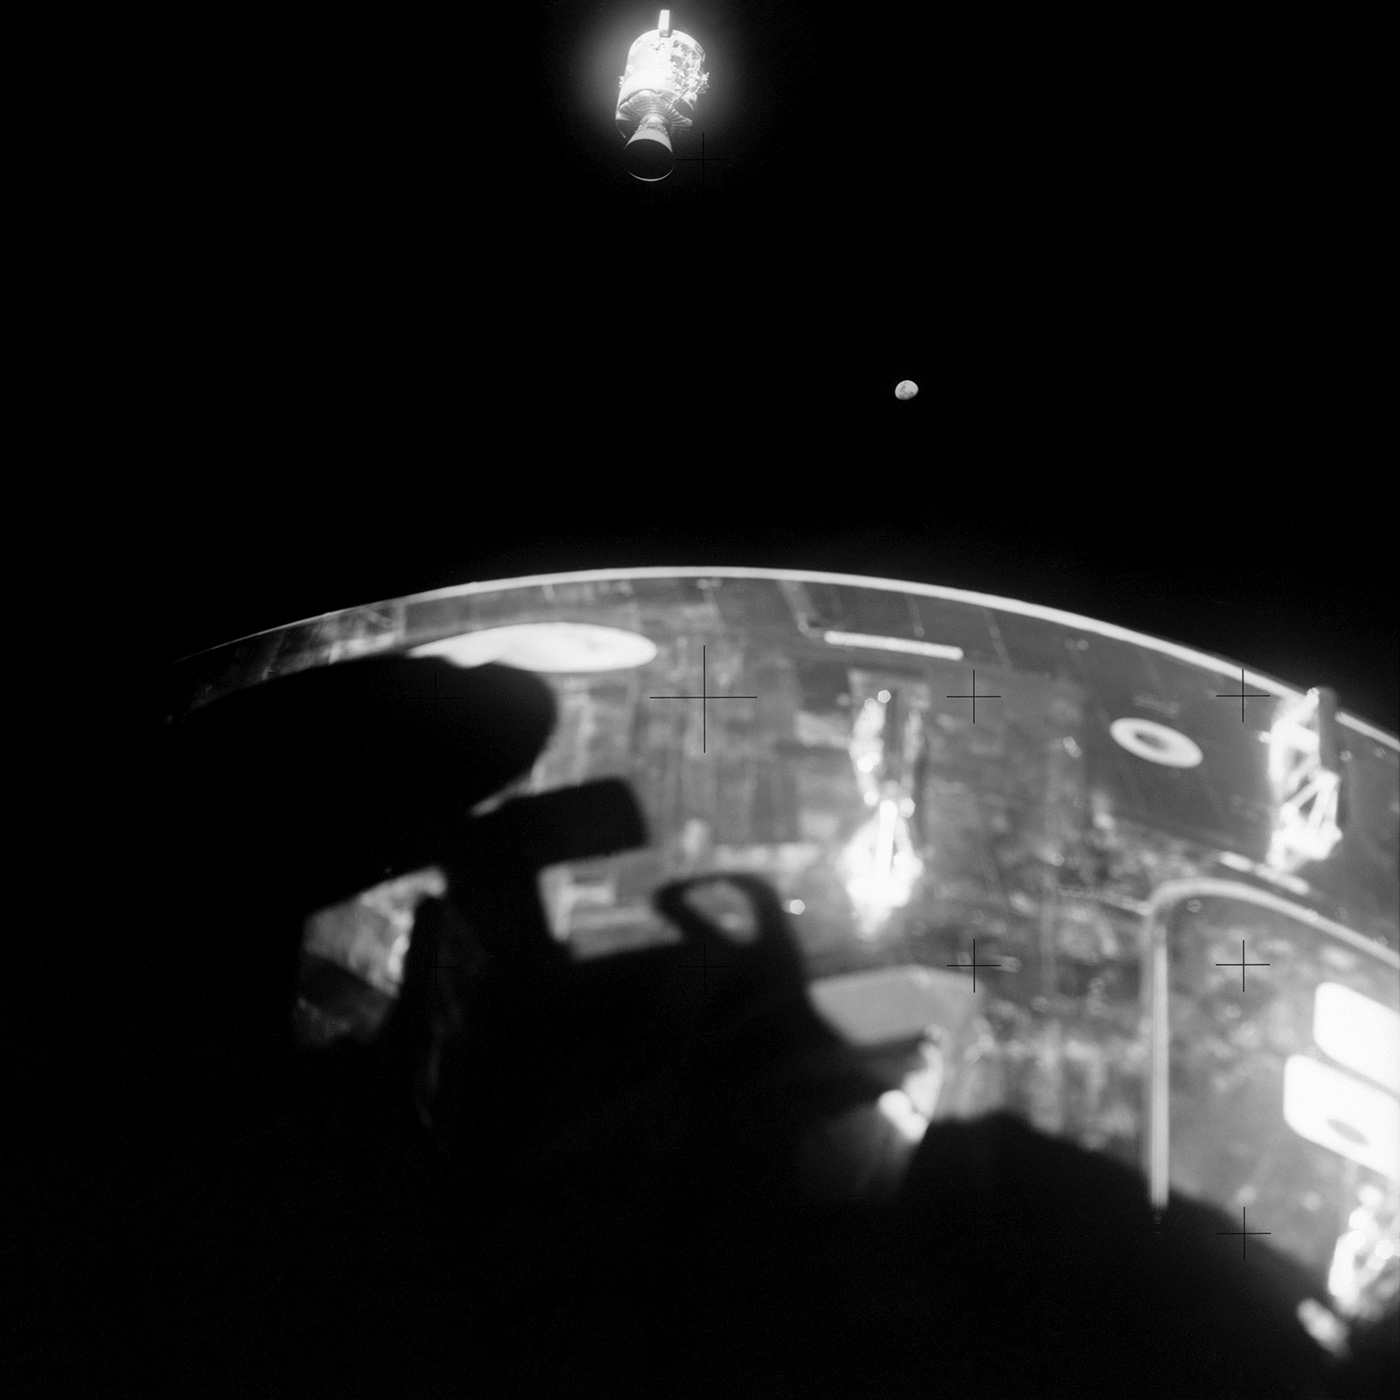 View of damaged Apollo 13 Service Module